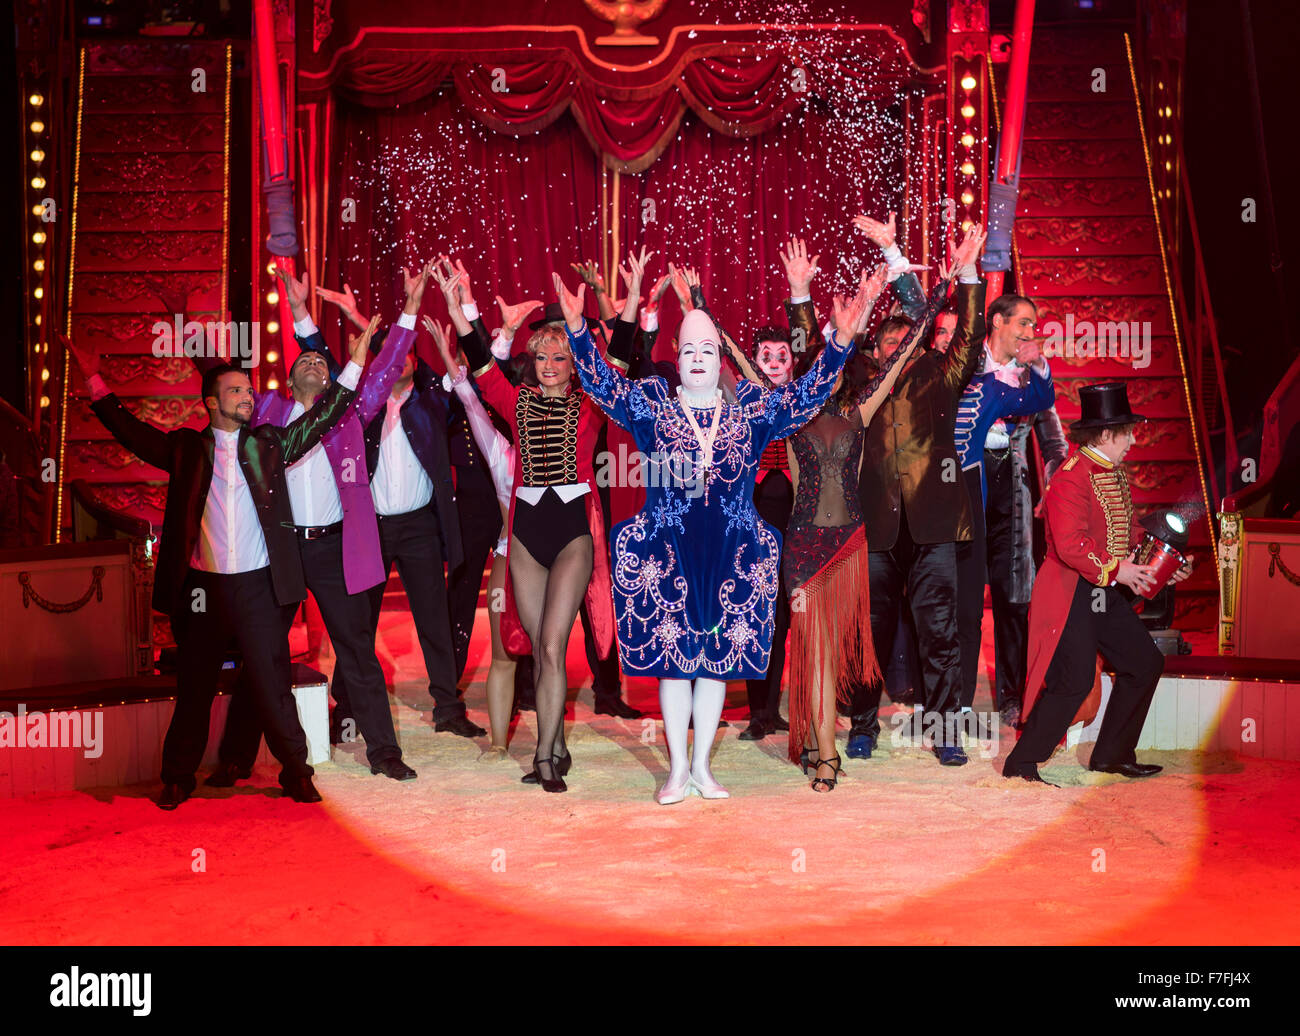 Artists of the Roncalli Circus perform their show 'Salto Vitale'. - Stock Image